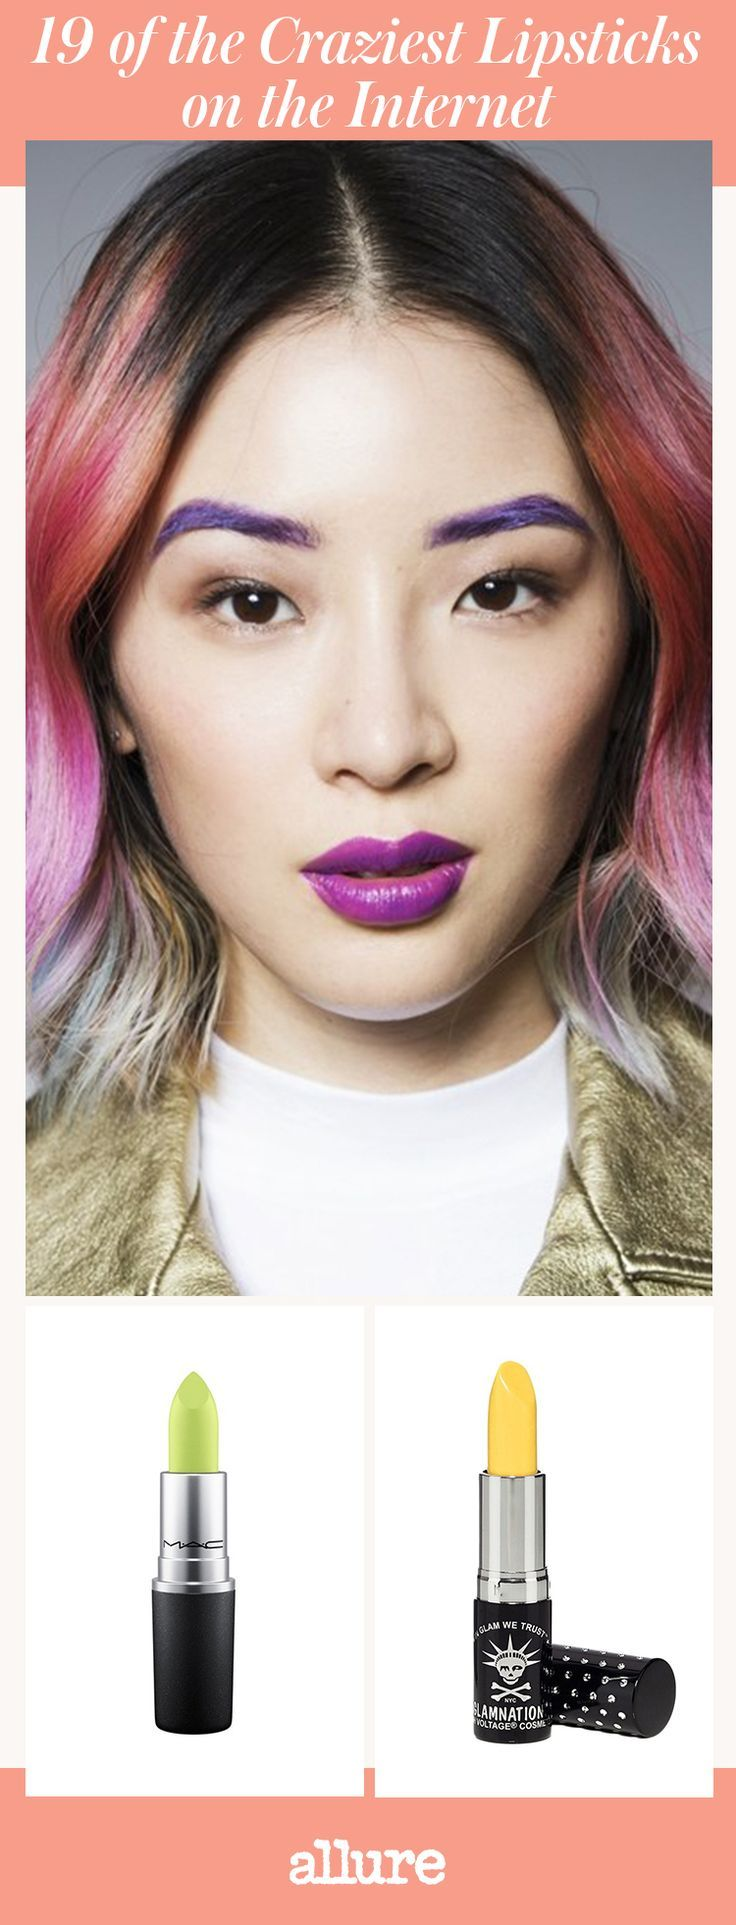 Cherry reds, hot pinks, and chocolatey nudes have nothing on the new wave of bold lipsticks. Lately, cosmetics companies like Bite Beauty, Kat Von D, and Make up For Ever are covering the complete color spectrum. Meet the most bizarre blue, eccentric eggplant, and quirkiest green lipsticks we could possibly find on the Internet. We dare you to try all of these rainbow shades—just not at once.